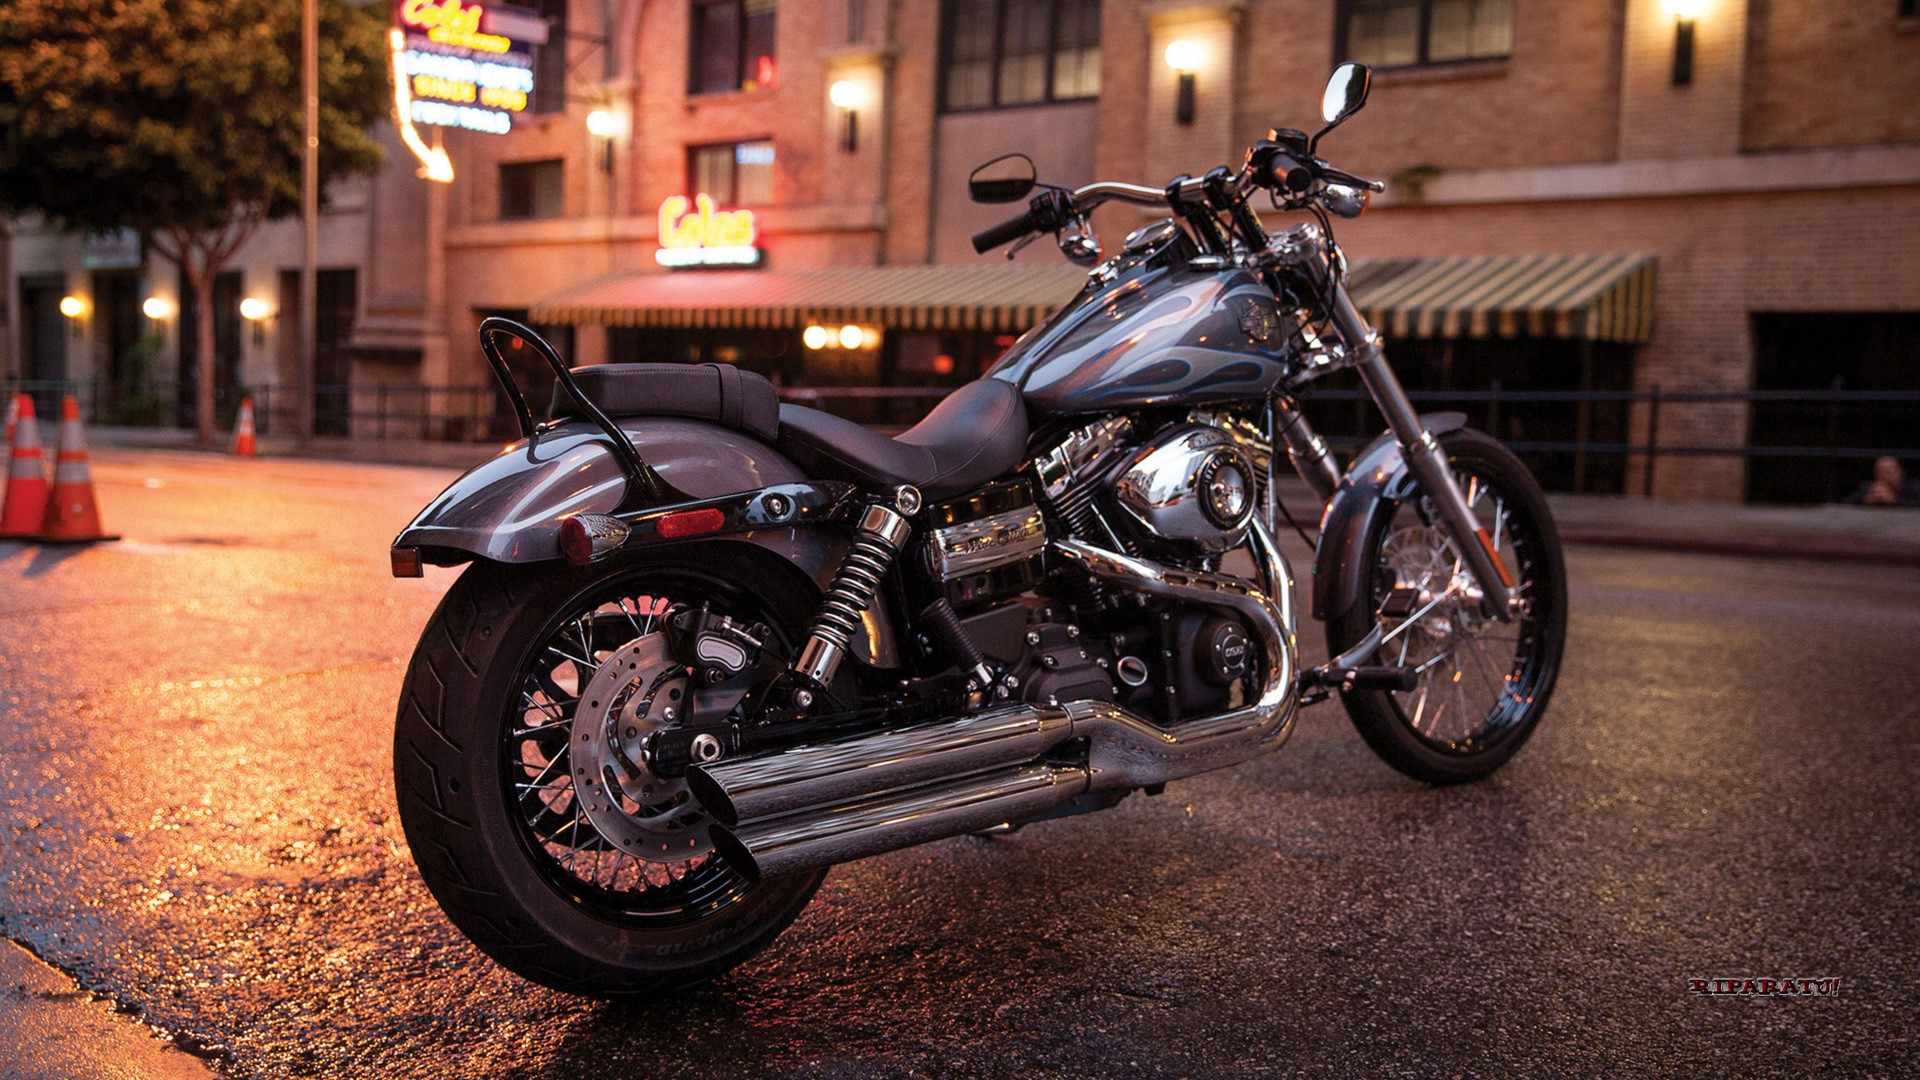 Harley Davidson Dyna Wide Glide Wallpapers